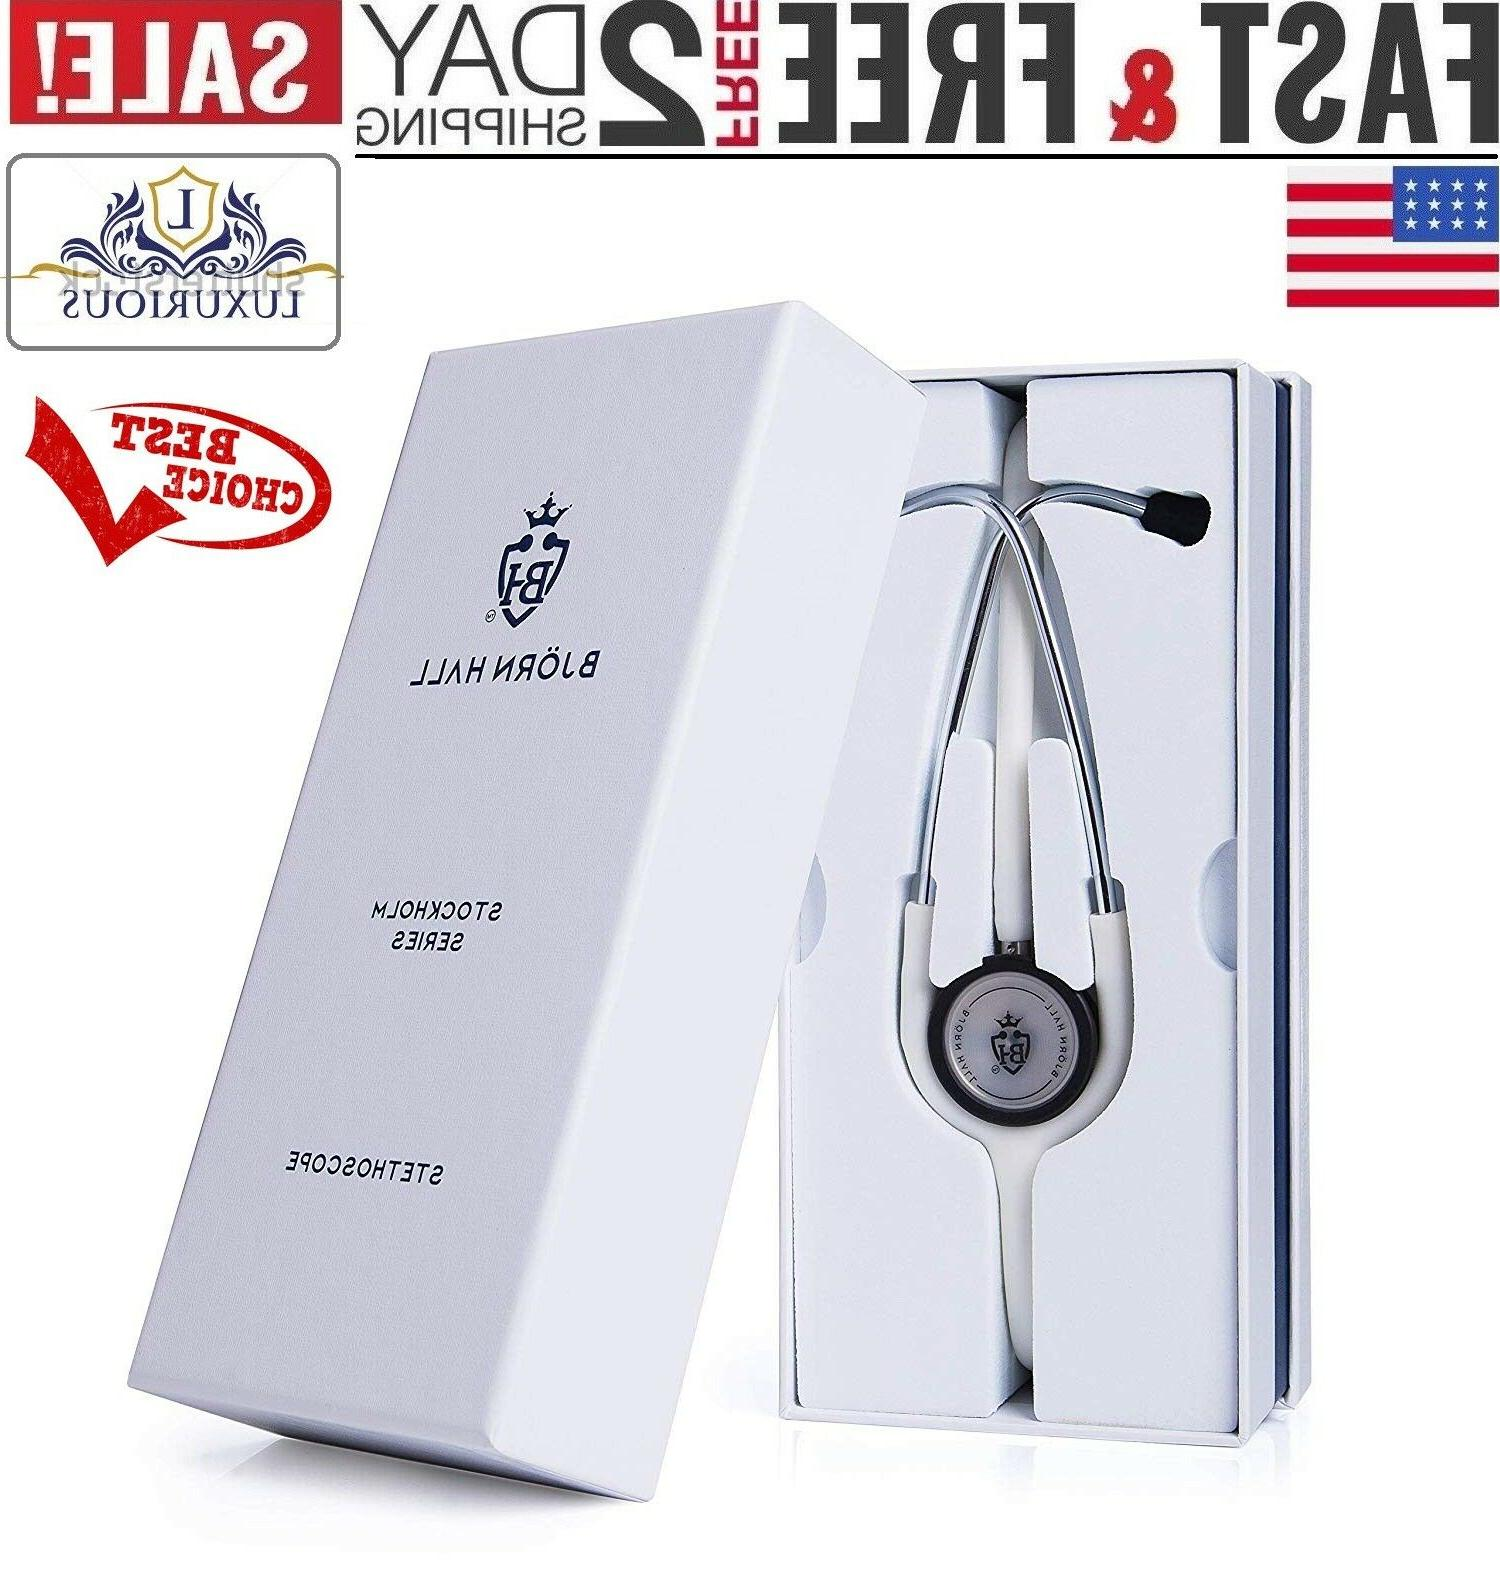 stainless steel clinical stethoscope 29 dual head